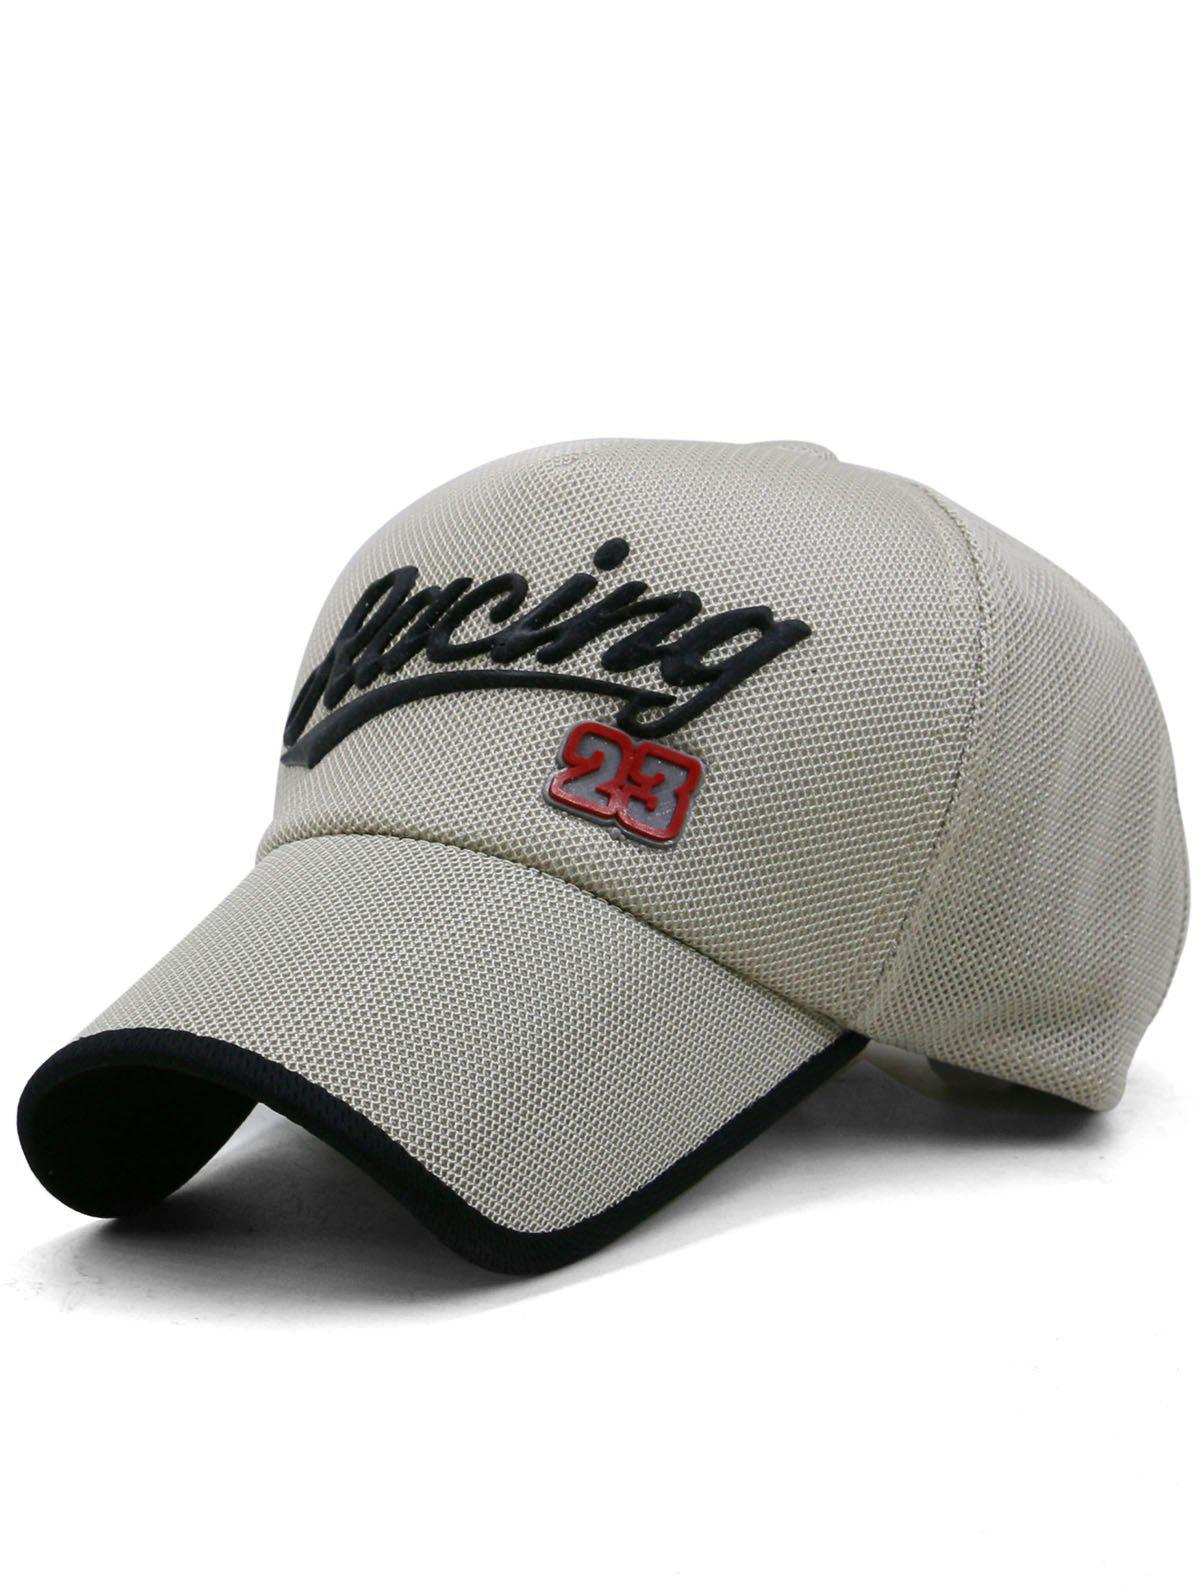 Store Racing Pattern Decorative Sunscreen Hat